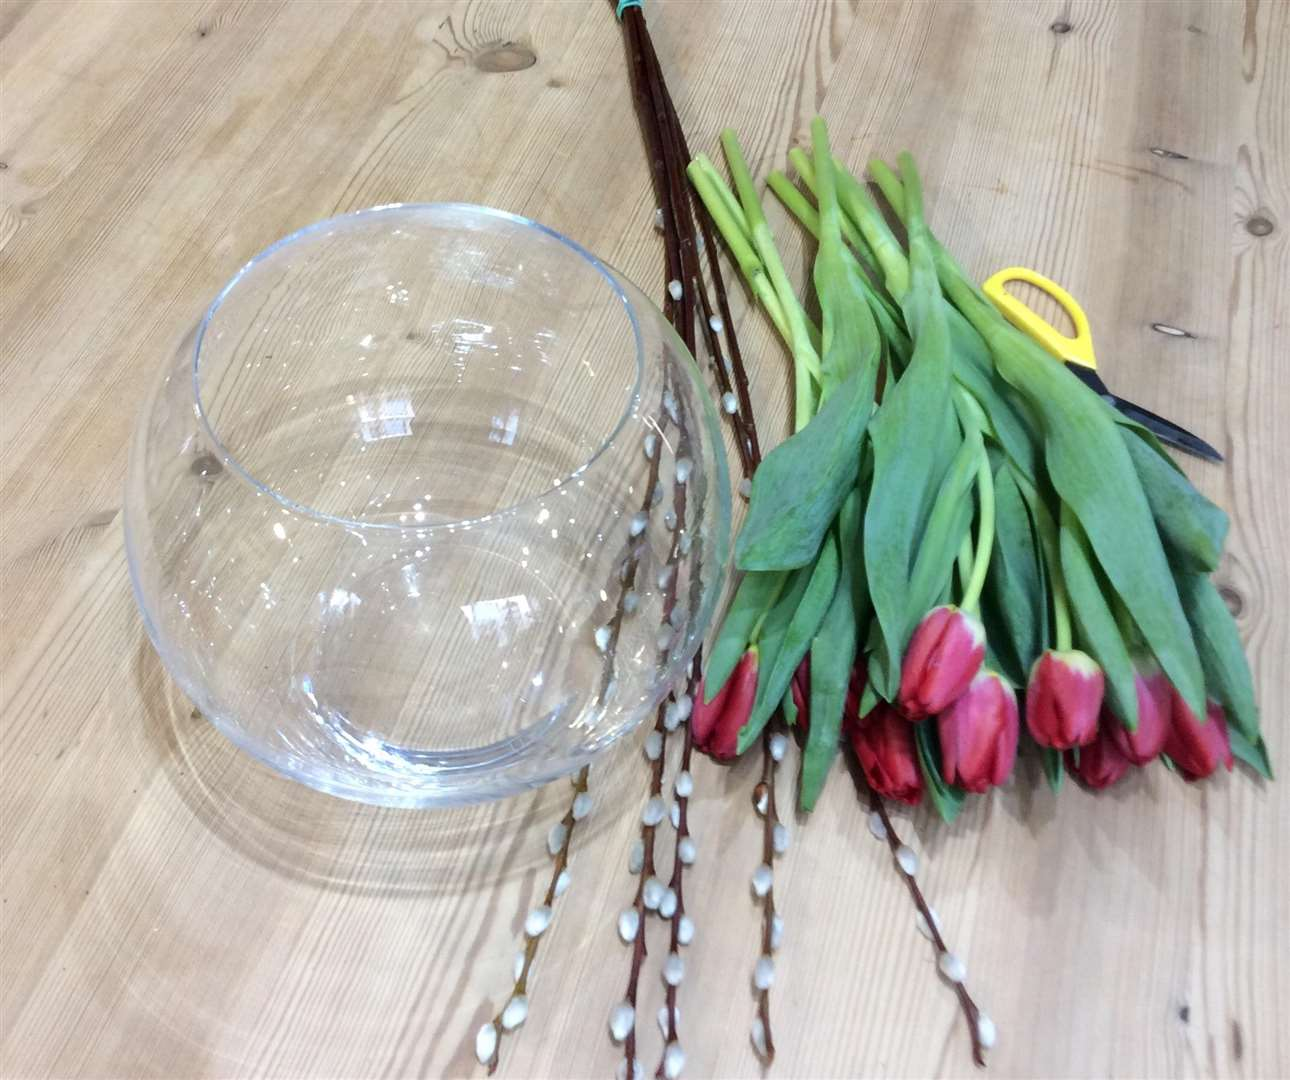 To get started, you will need a clear glass bowl, some tulips, some willow and a drop of water. (6926553)